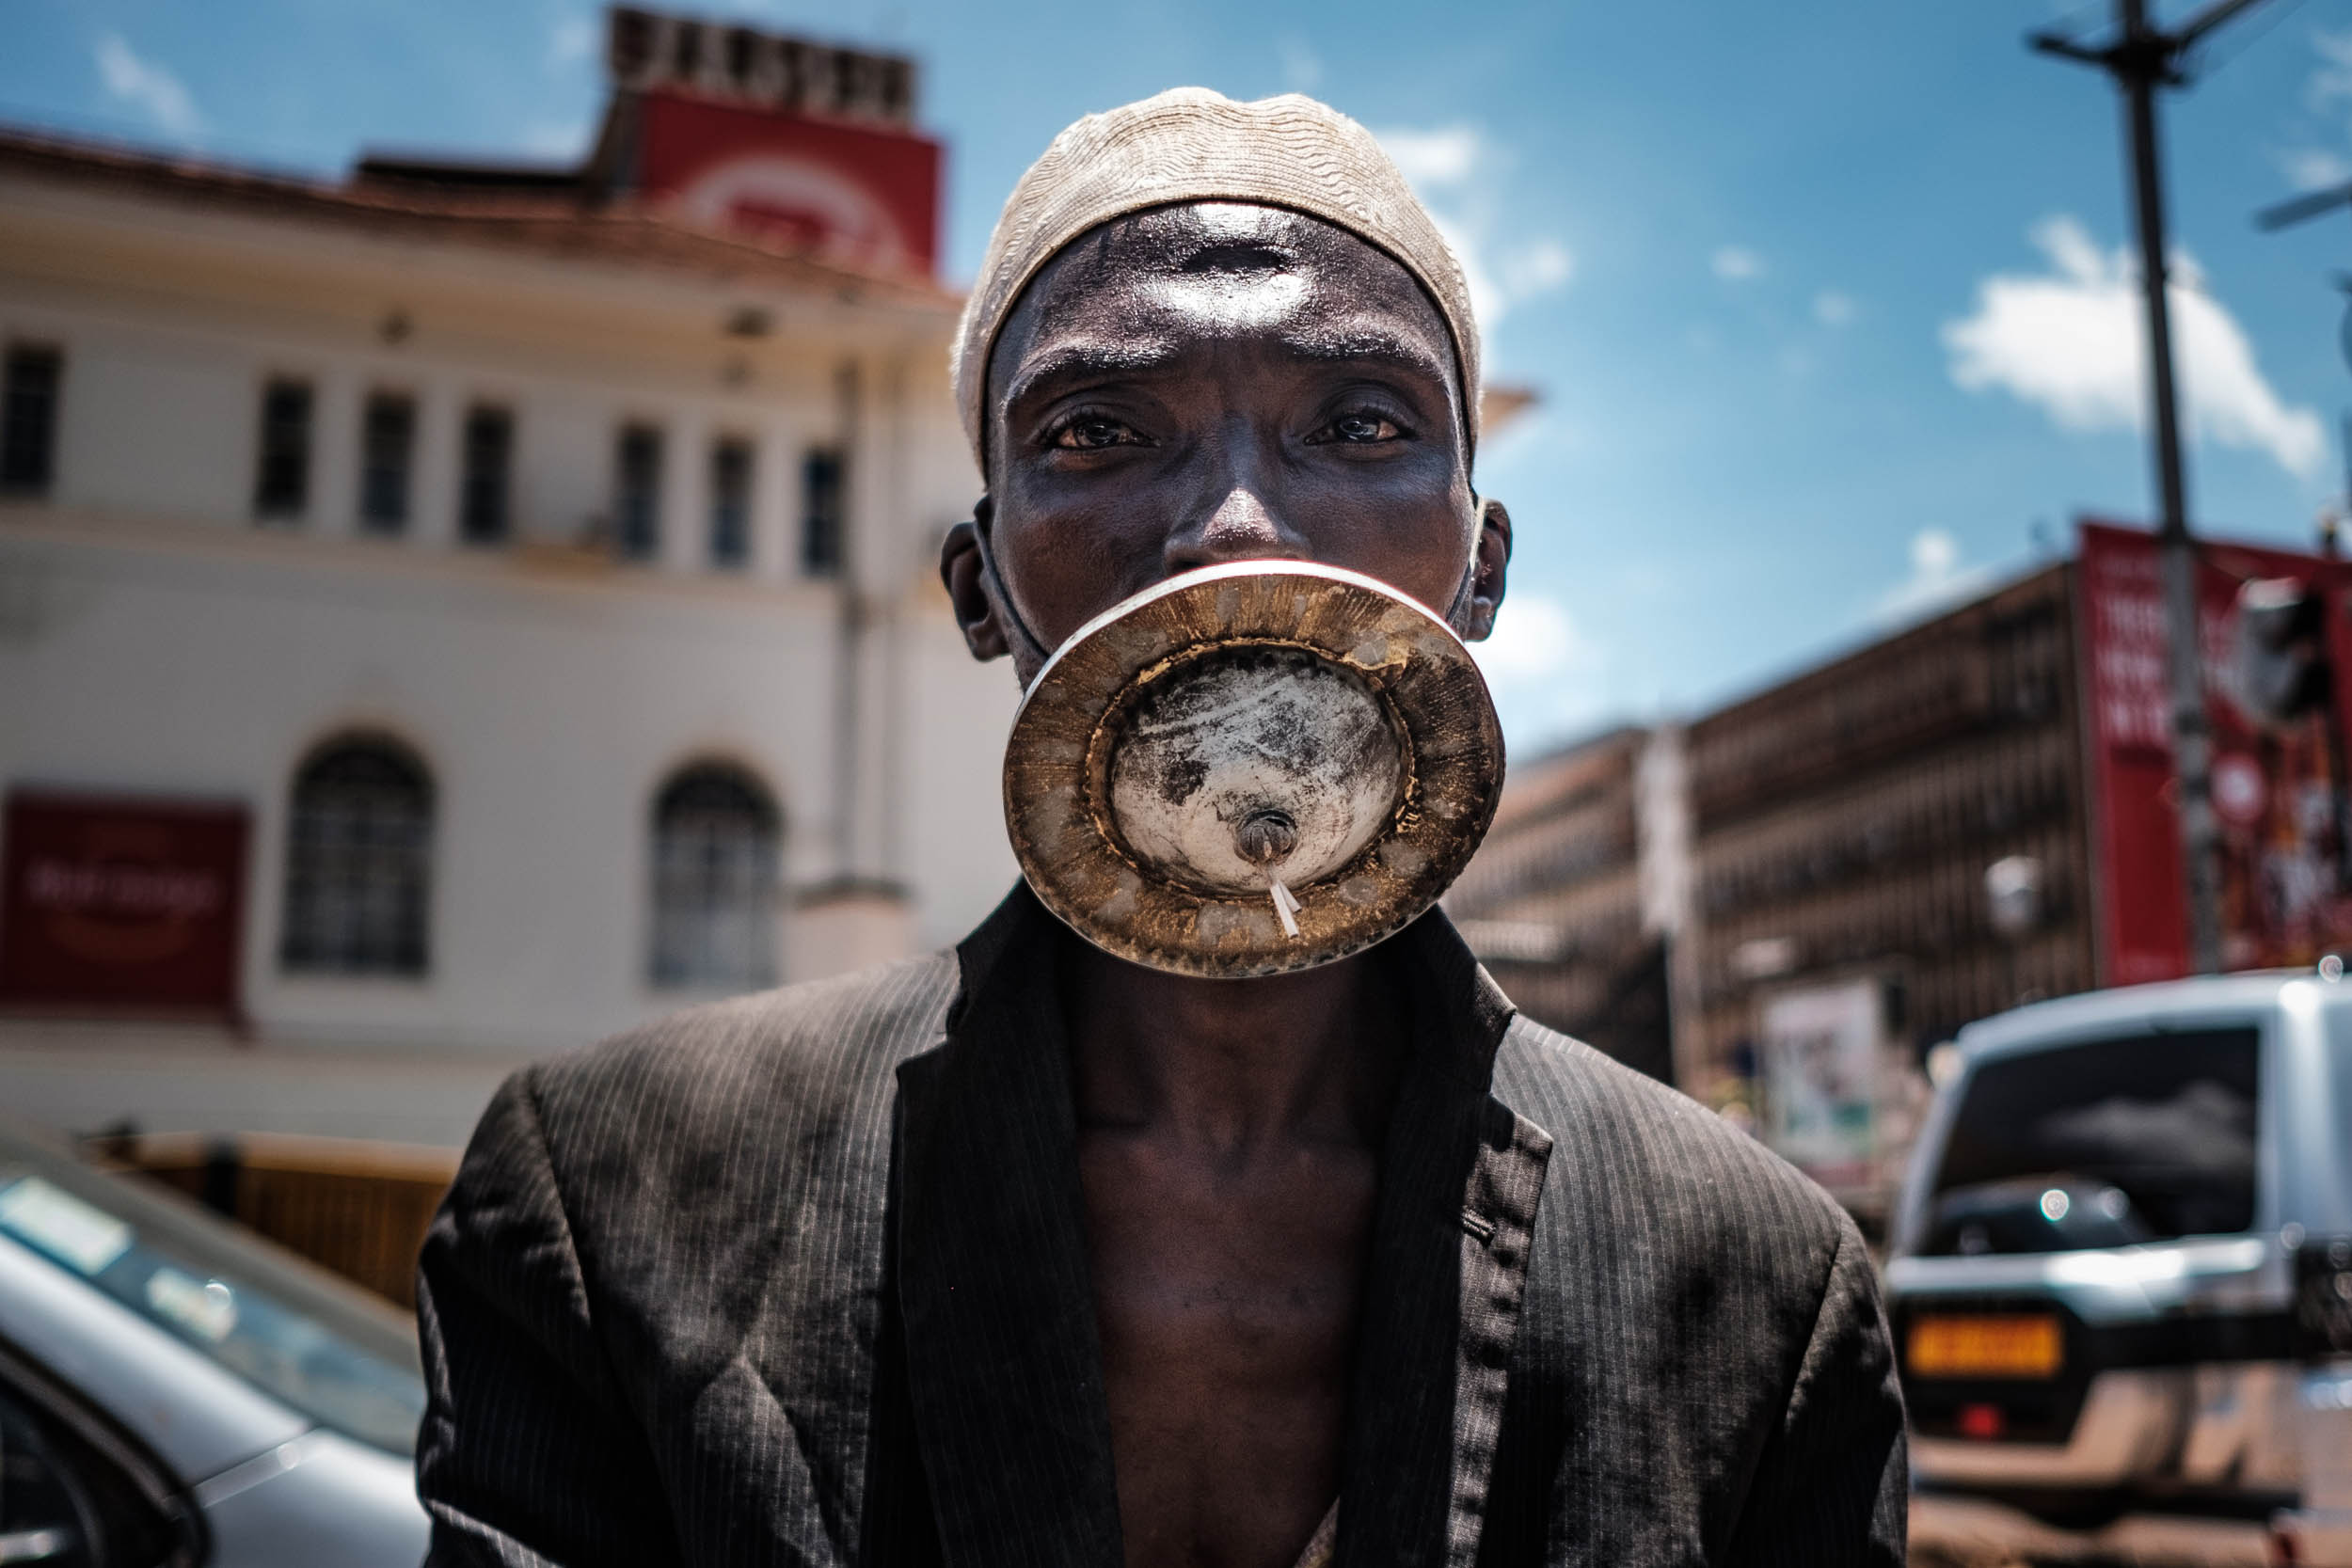 A man wearing an alternative mask poses for a photograph in Kampala, on April 1, 2020. - Ugandan President Yoweri Museveni on March 30, 2020, ordered an immediate 14-day nationwide lockdown in a bid to halt the spread of the COVID-19 coronavirus which has so far infected 33 people in the country. Photo: Sumy Sadurni / AFP